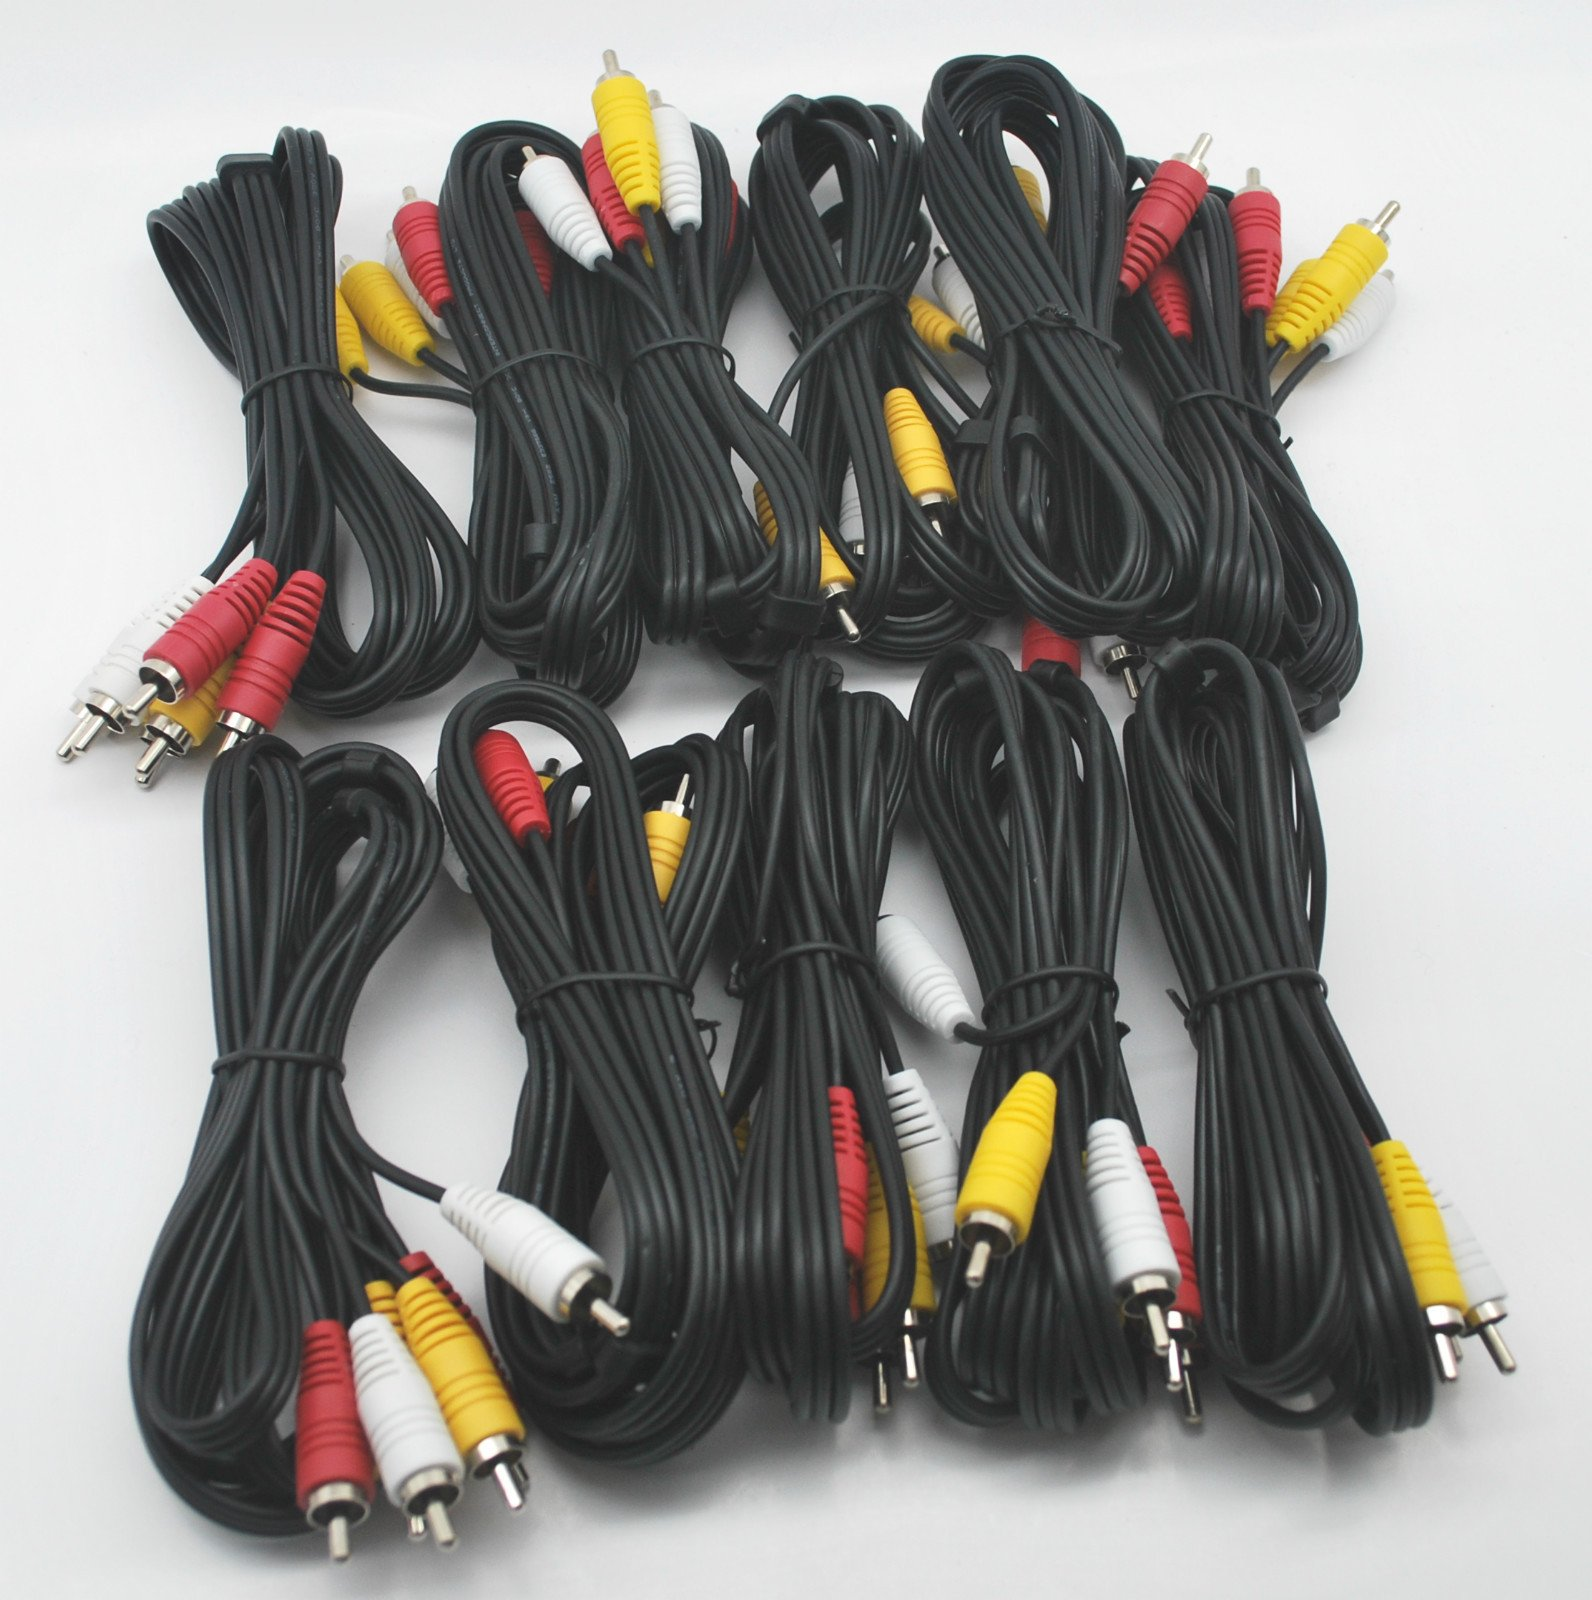 LOT OF 10 NEW 6 Ft RCA AUDIO/VIDEO COMPOSITE CABLES DVD/VCR/SAT YELLOW RED & WHITE CONNECTORS by DIRECTV (Image #1)